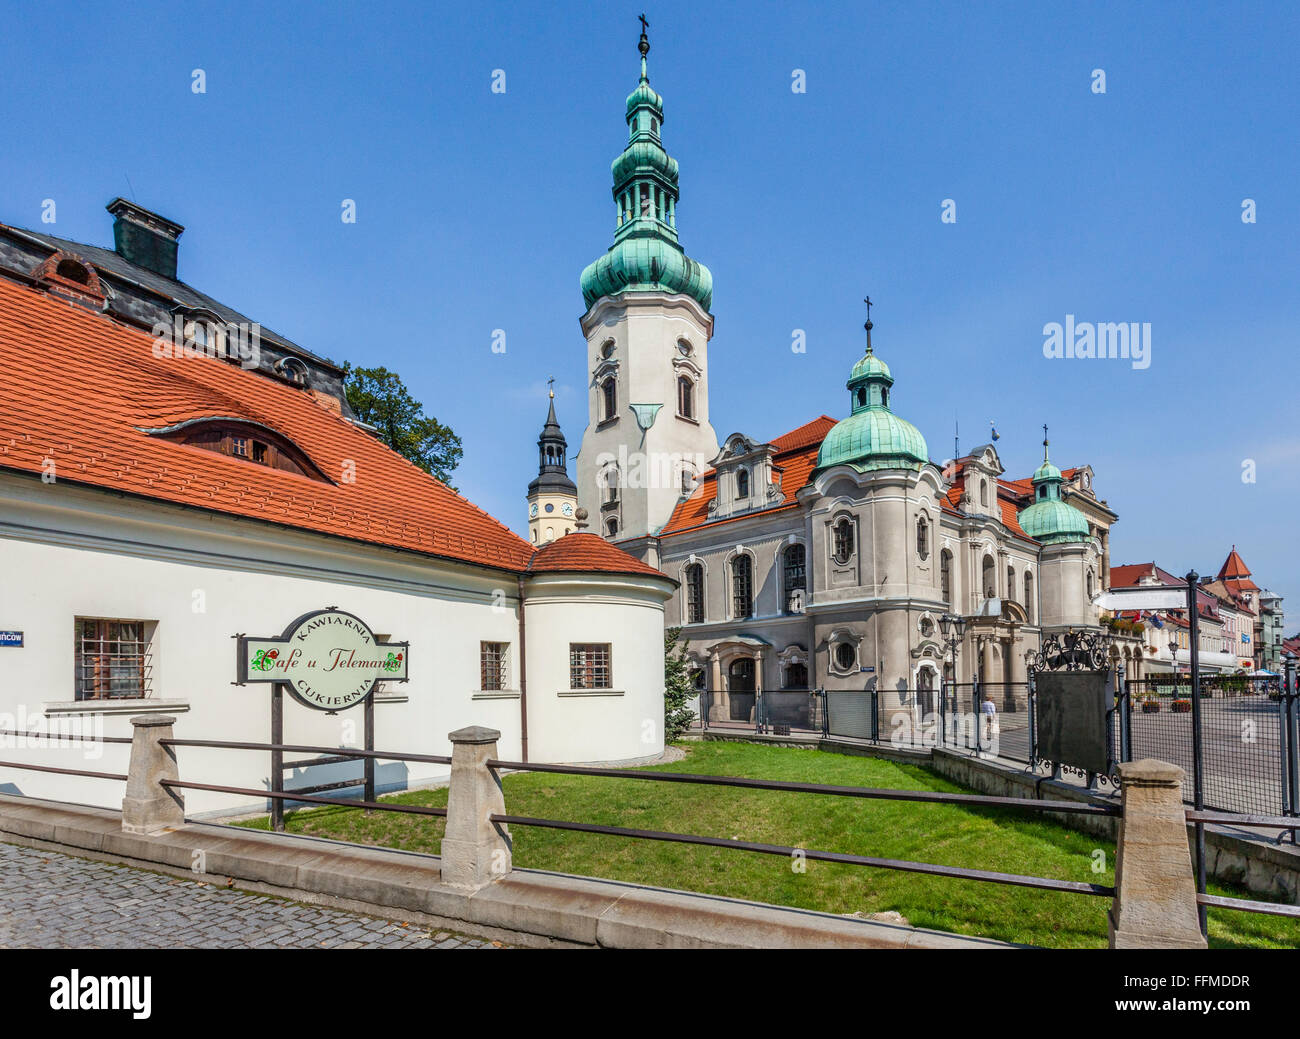 Poland, Silesian Voivodship, Pszczyna (Pless), view of the Neo-baroque Protestant Church, at the gate house of Pszczyna - Stock Image